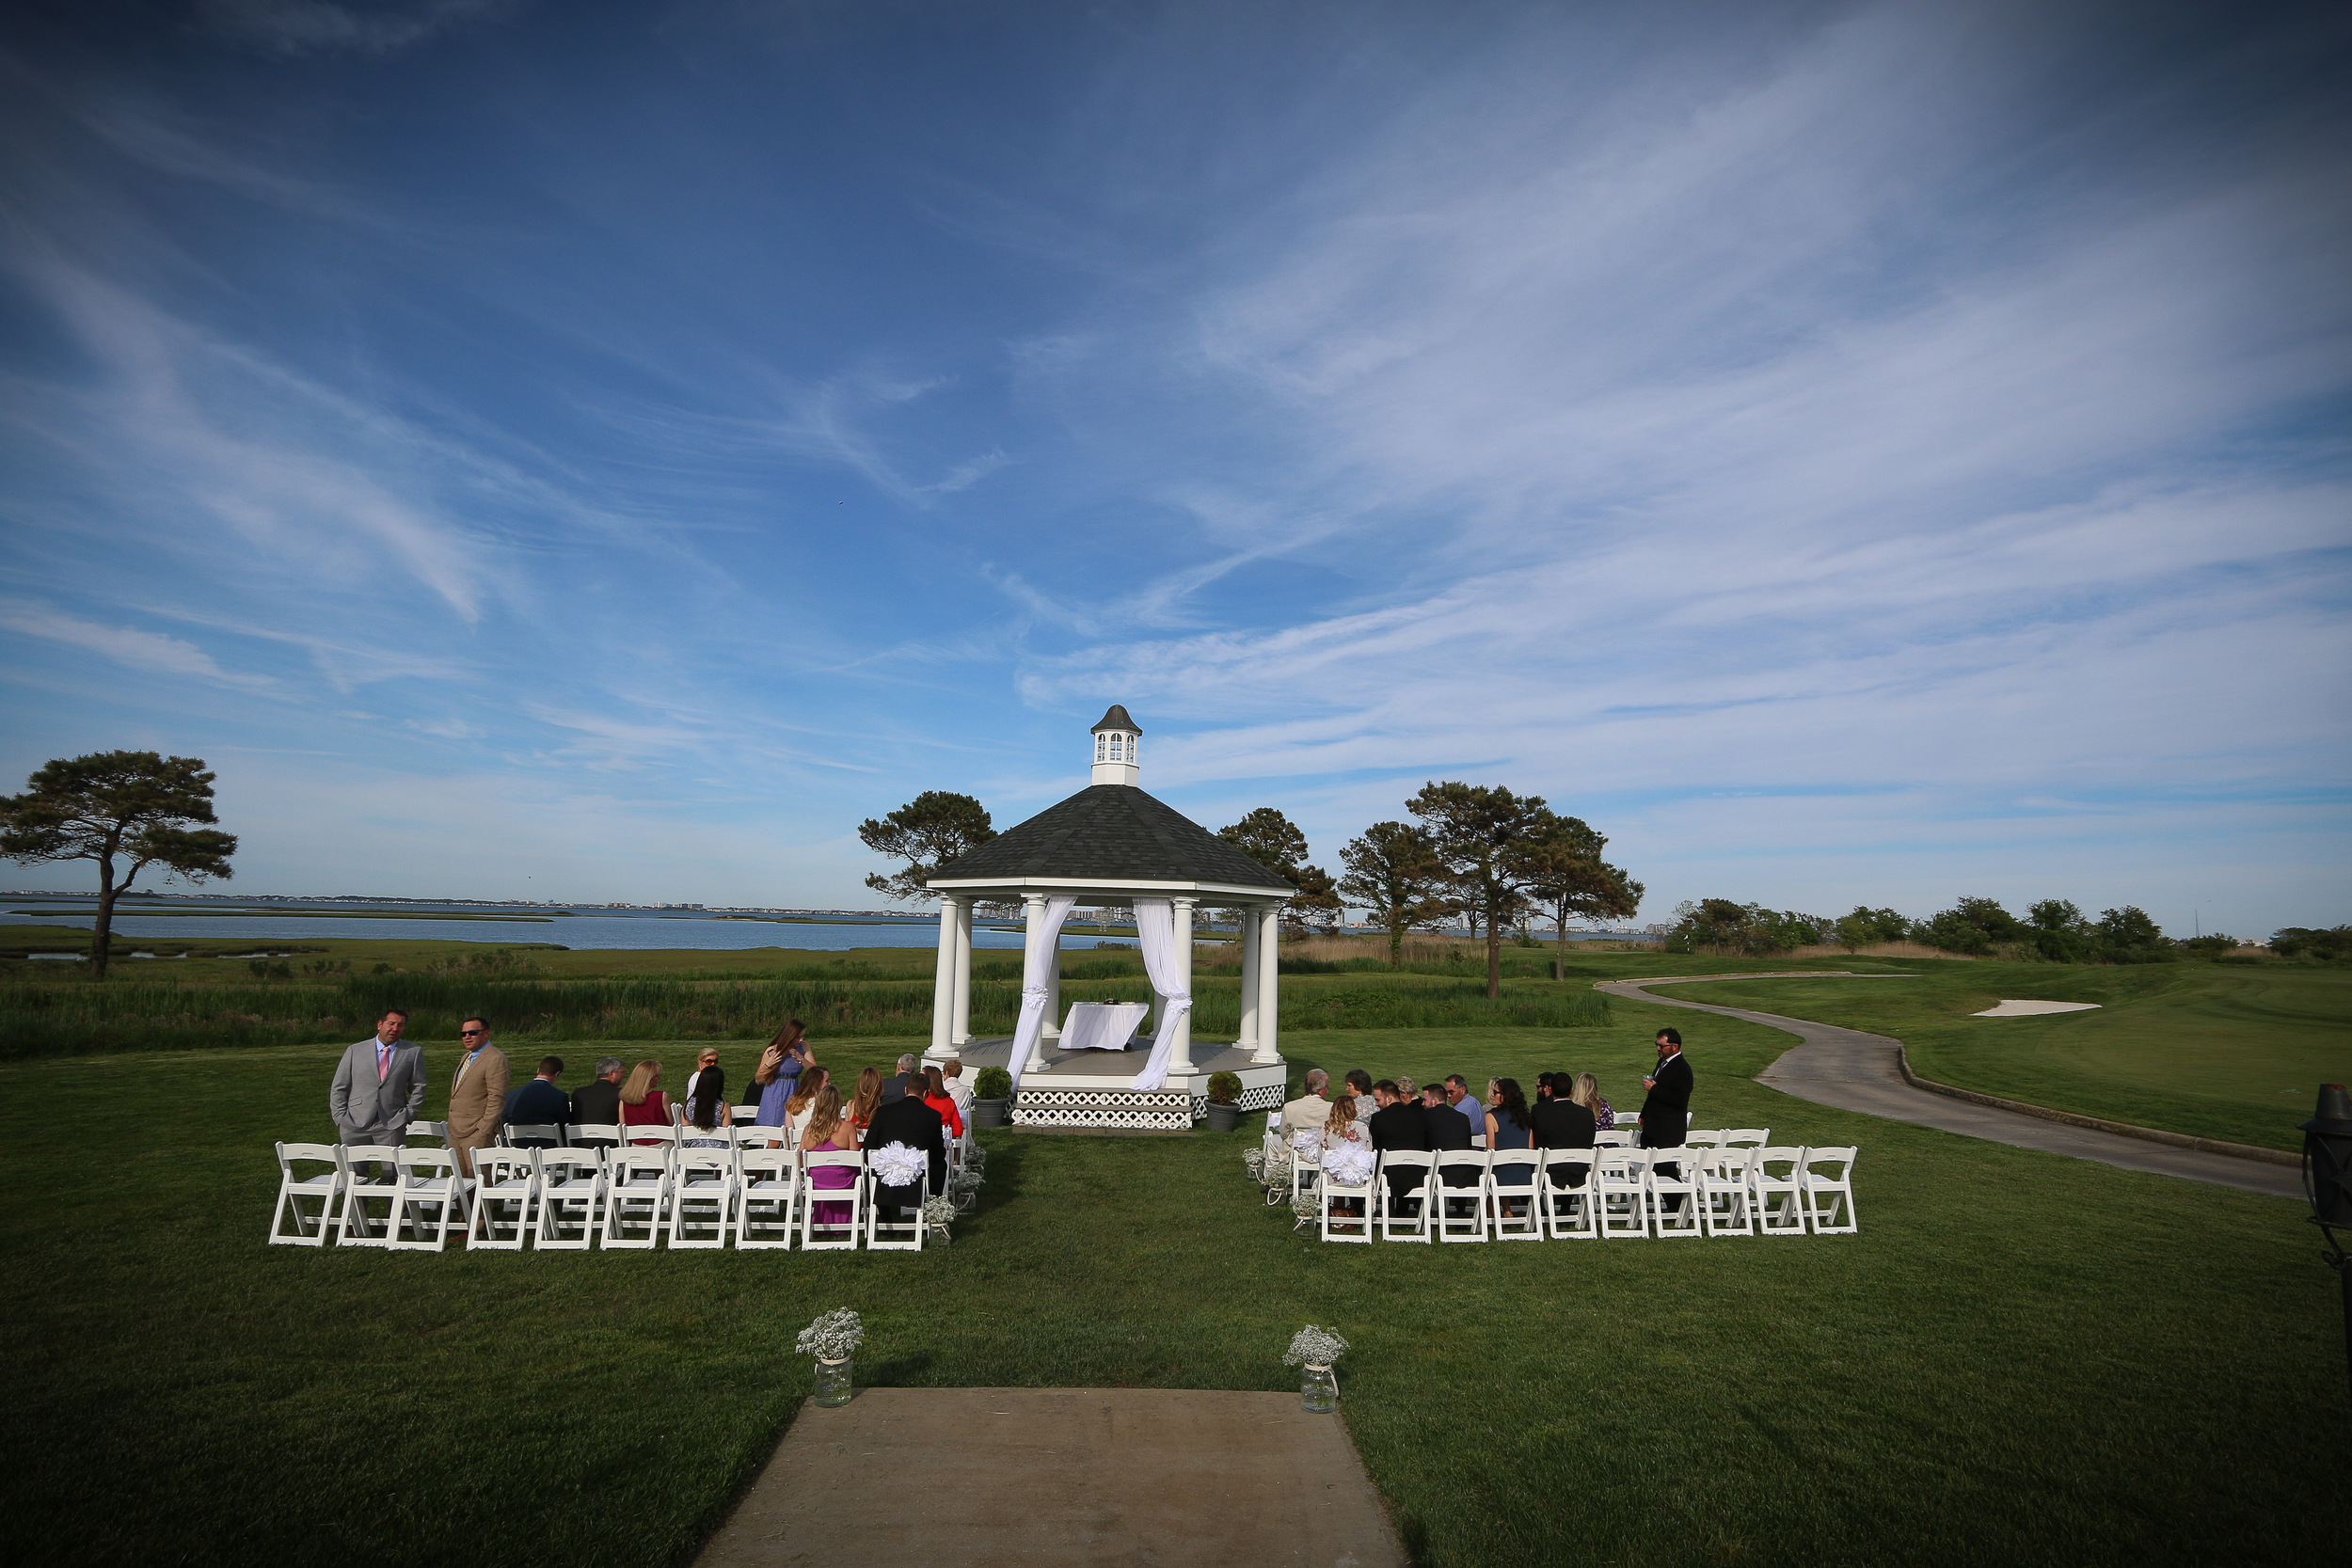 It was a beautiful evening for a wedding!